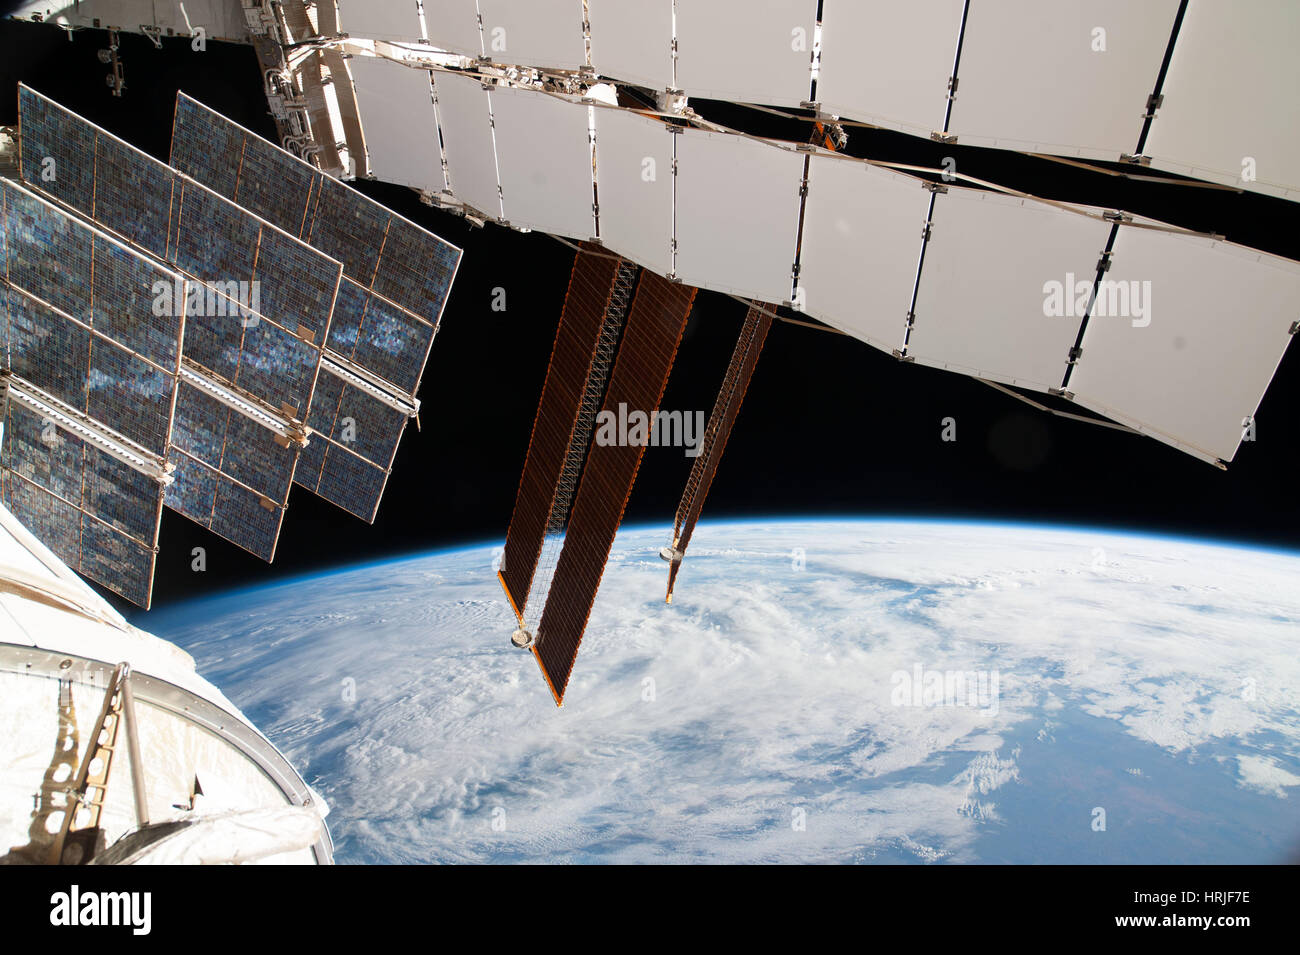 Expedition 38, ISS Solar Panels, 2014 - Stock Image